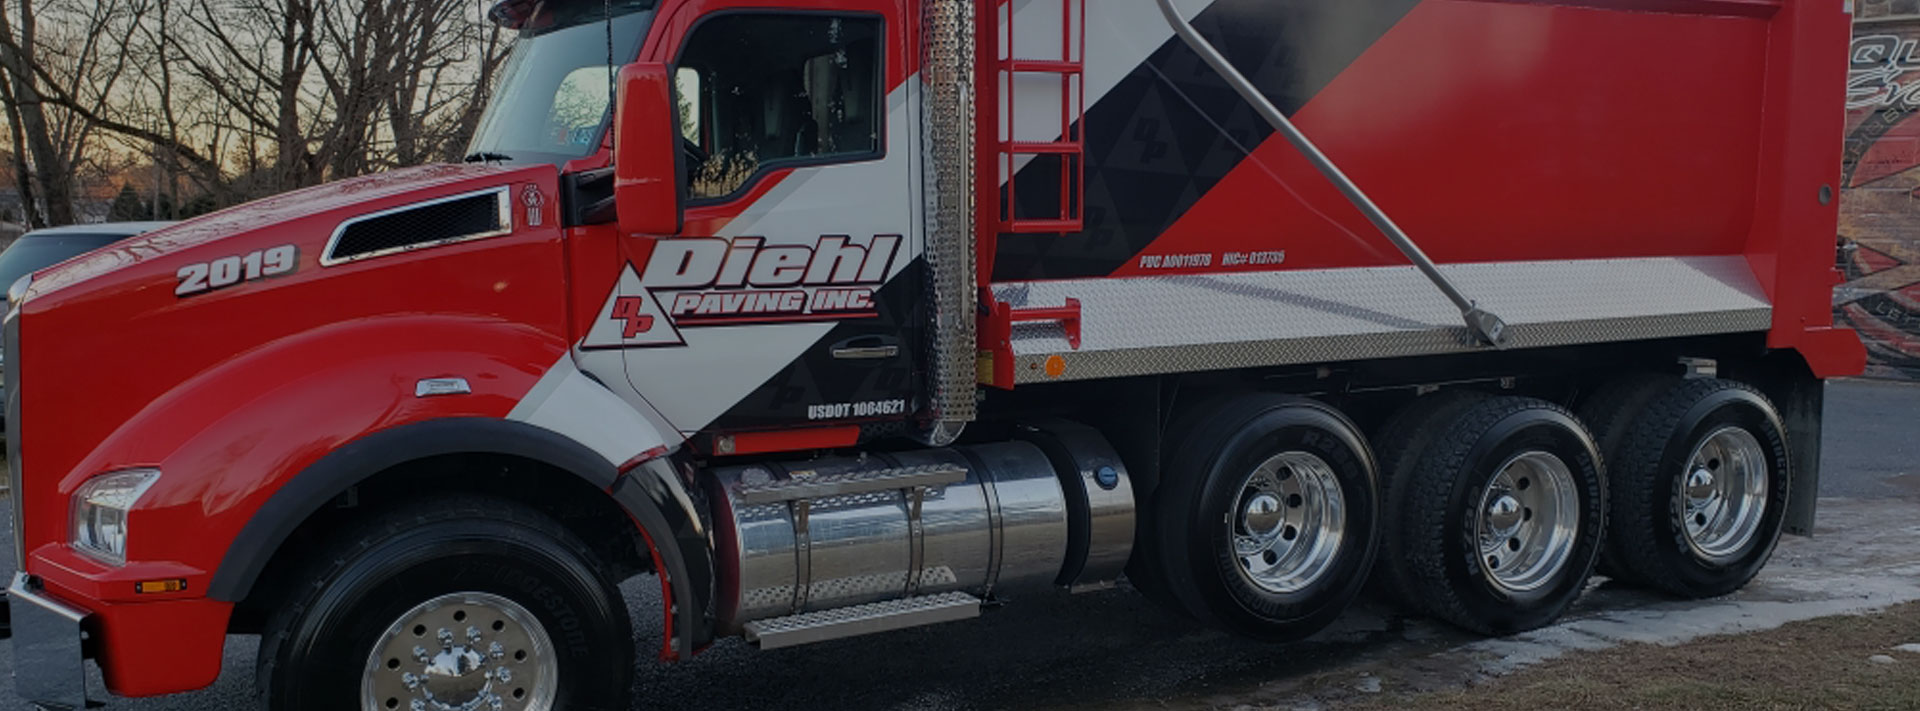 Diehl Paving Inc Truck